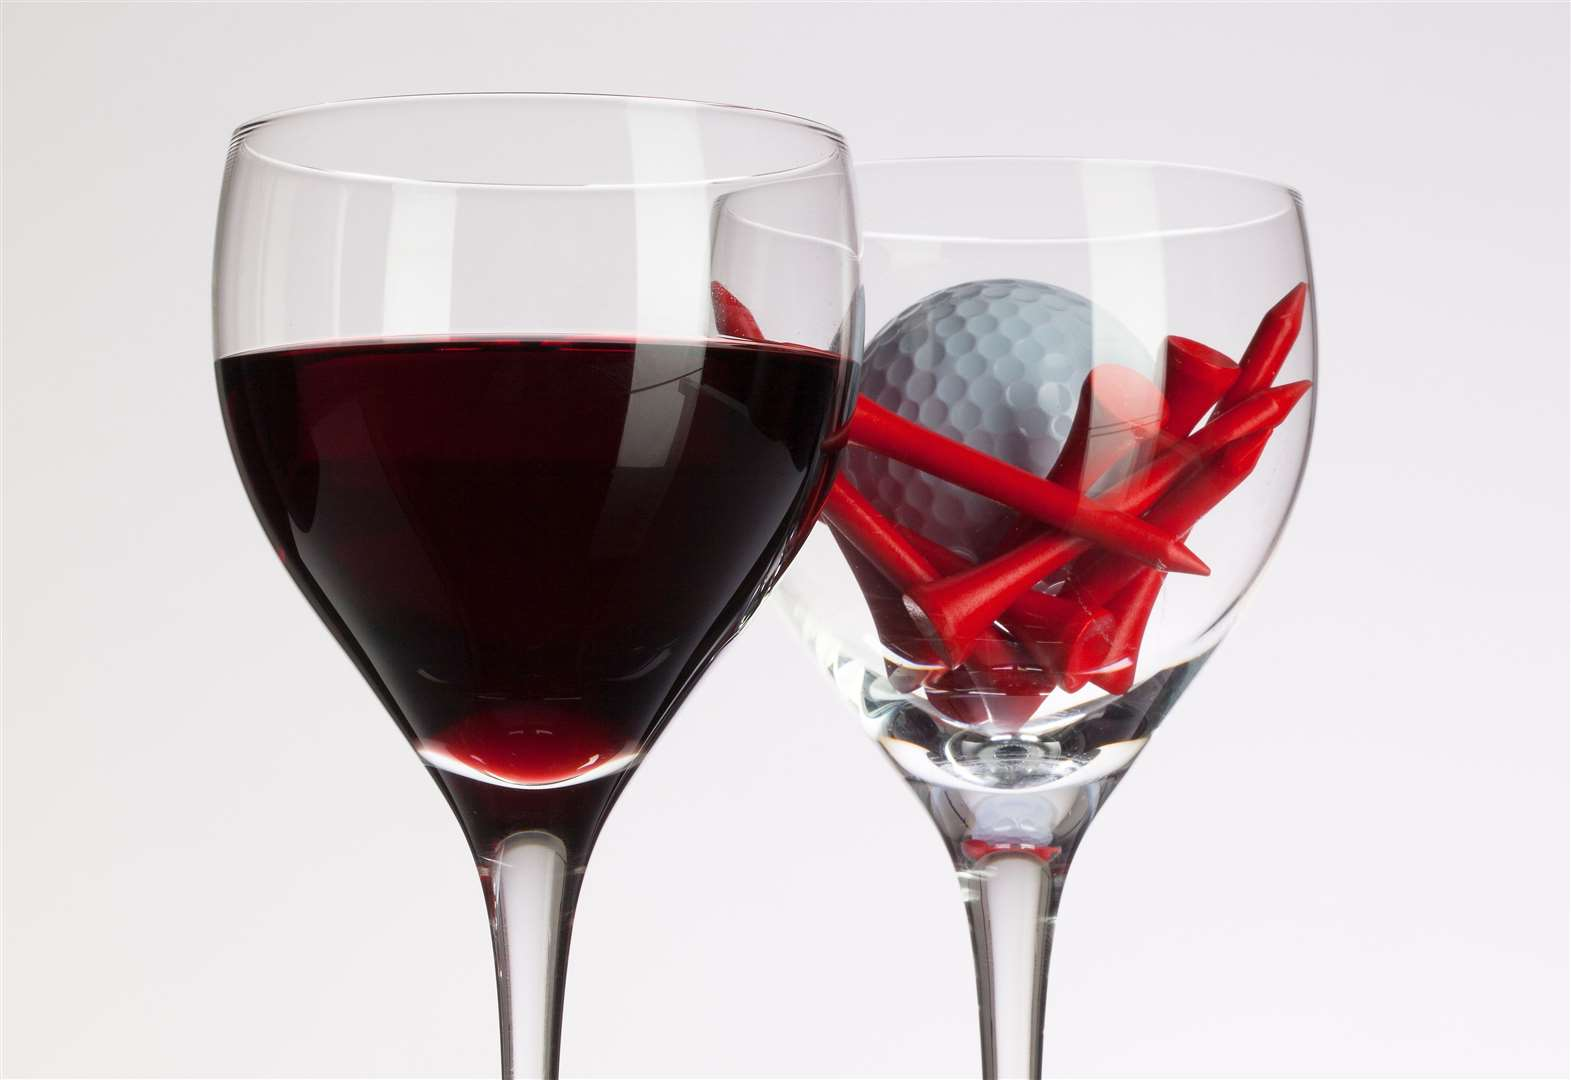 Fall in a tee-time glass of wine